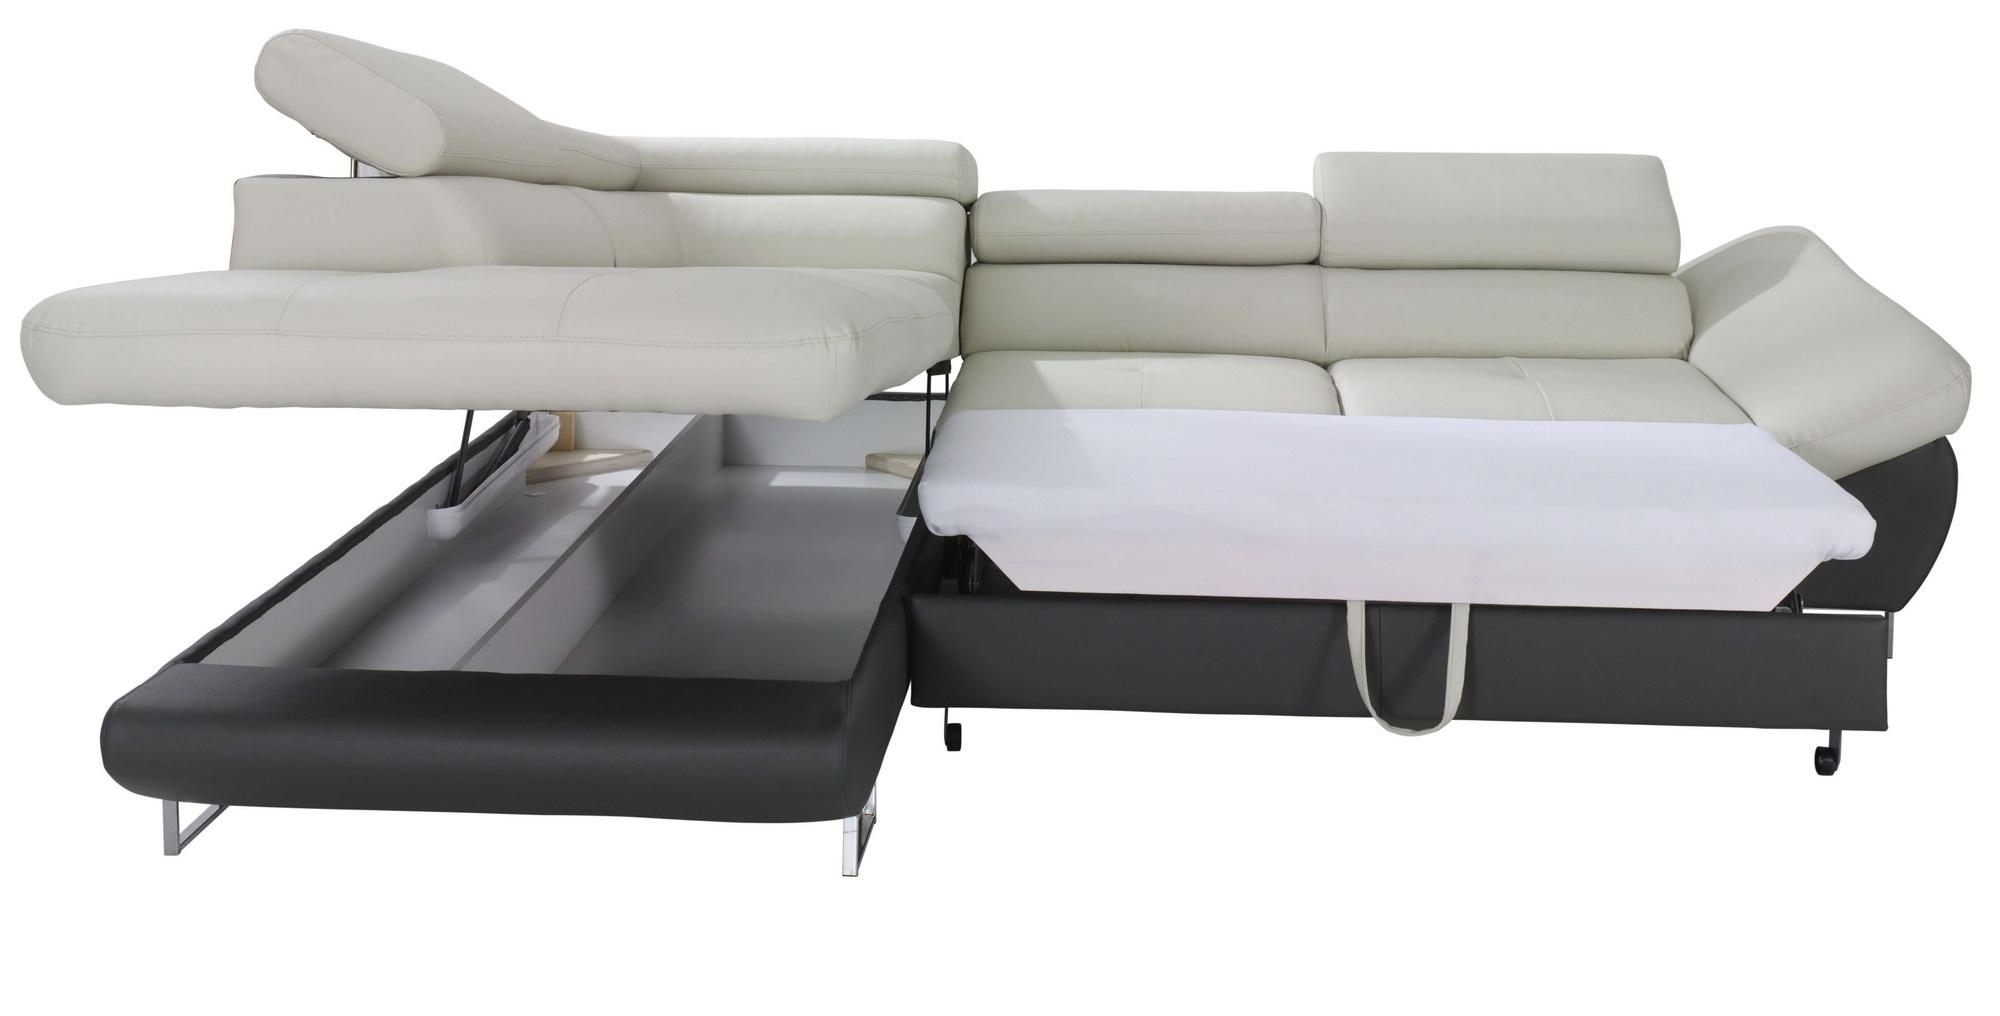 right full dining chiara sofa sleeper amazon kitchen leather com bed sectional italian dp